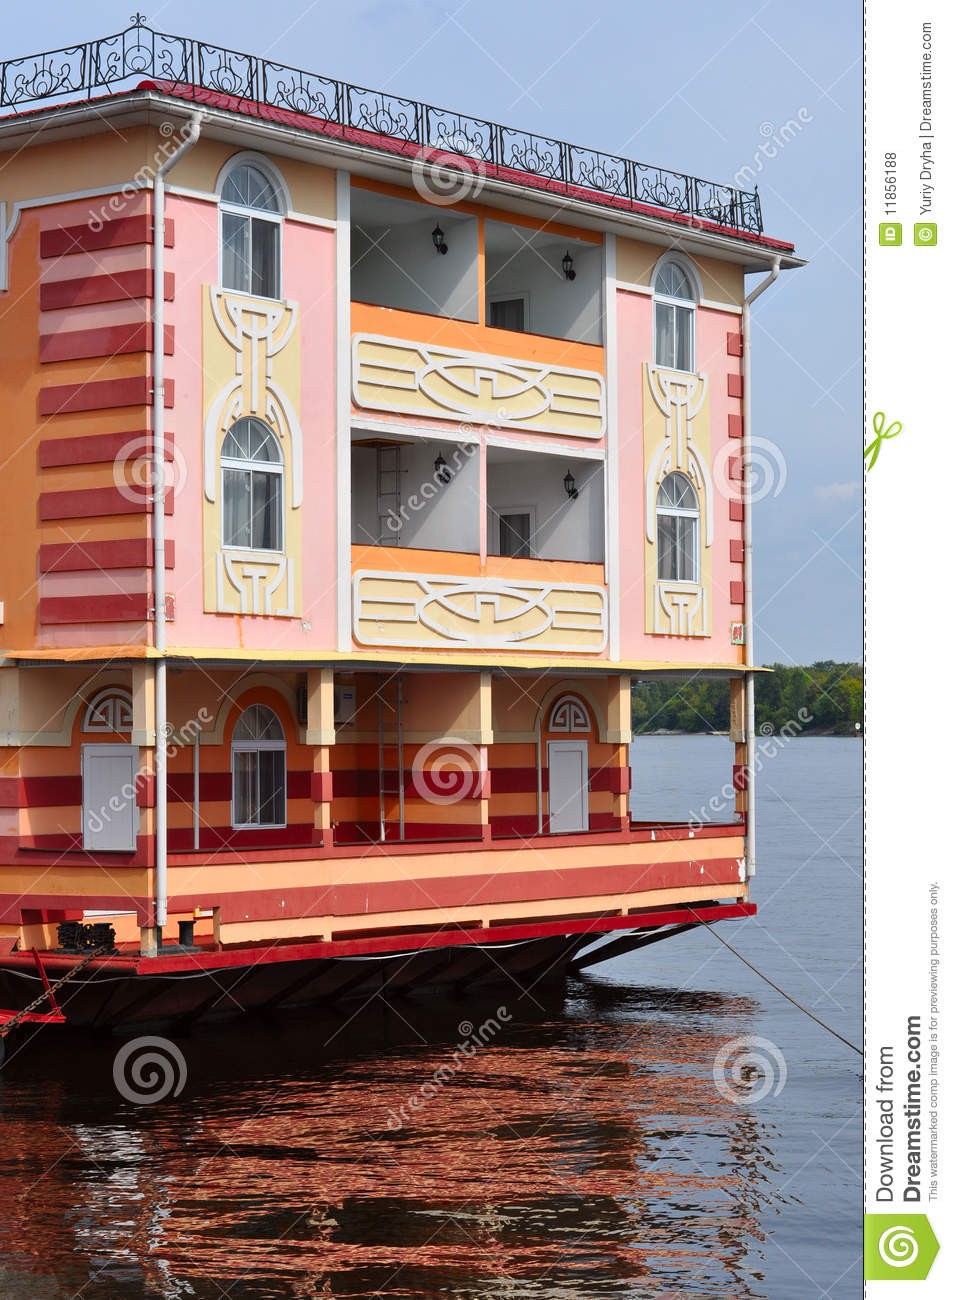 houseboat clipart - photo #50